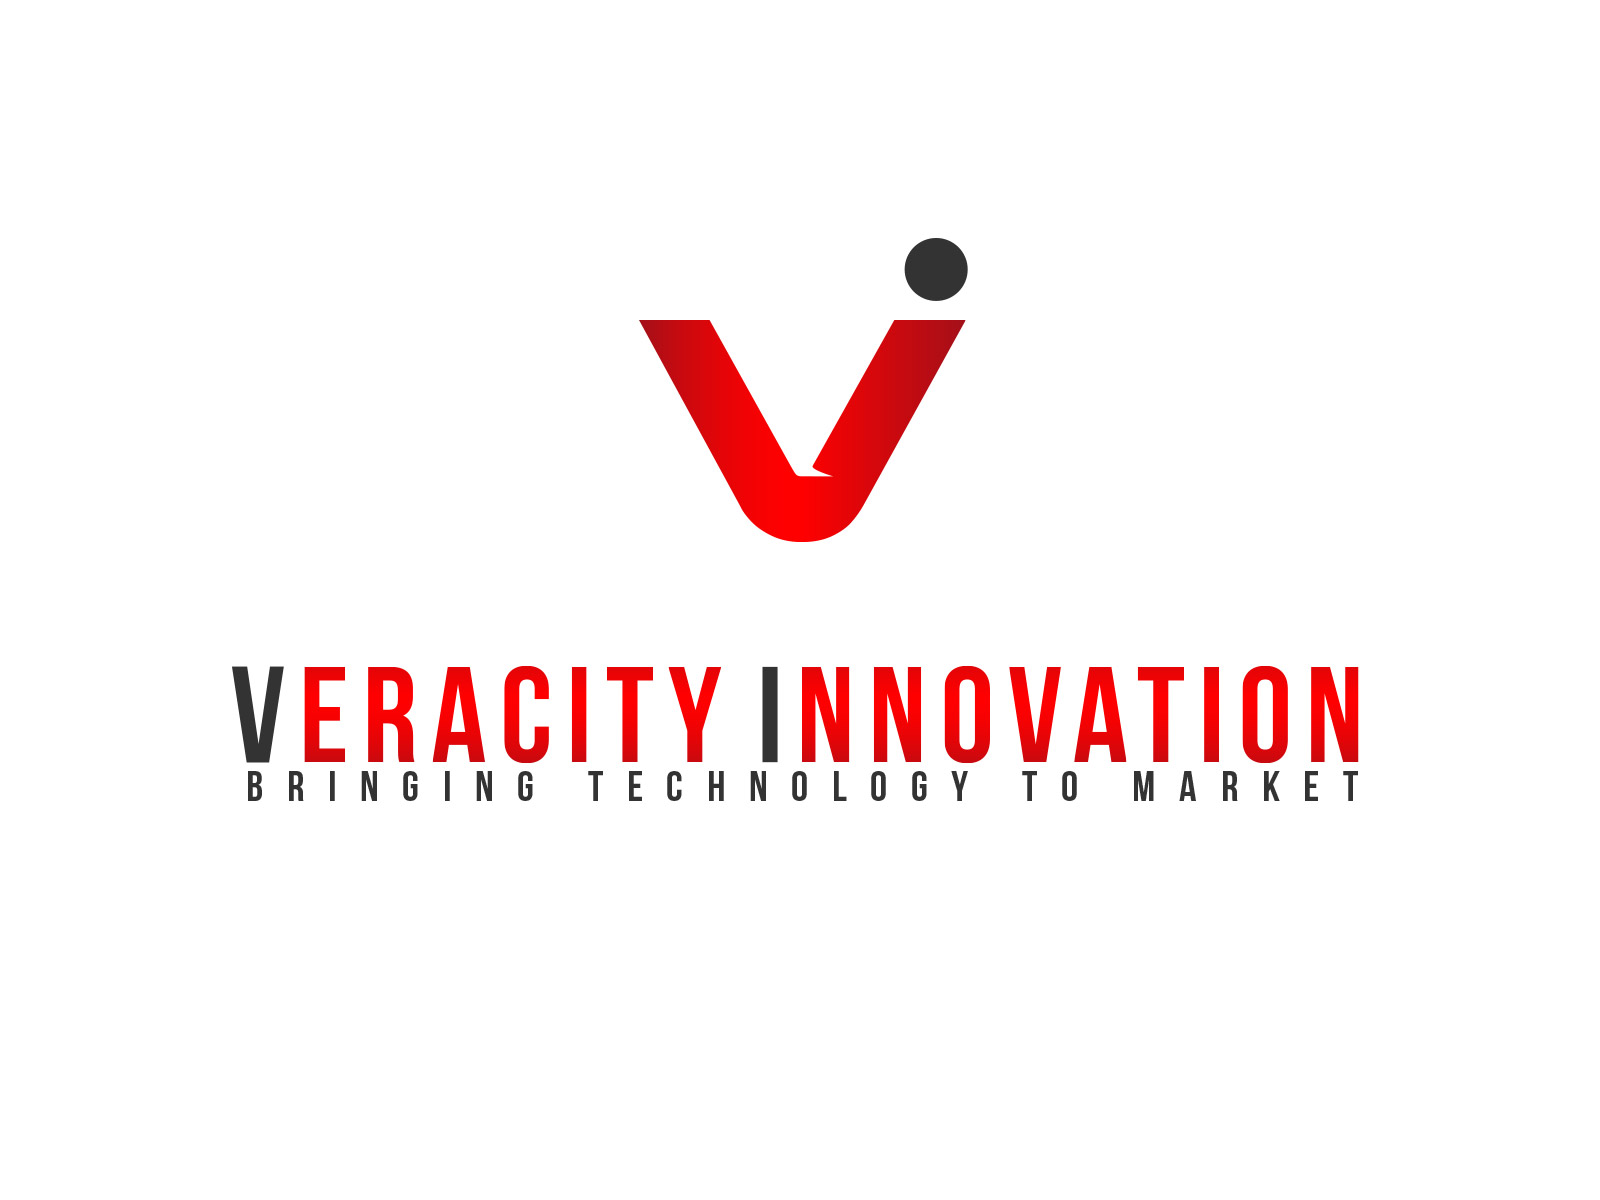 Logo Design by olii - Entry No. 304 in the Logo Design Contest Creative Logo Design for Veracity Innovation, LLC.